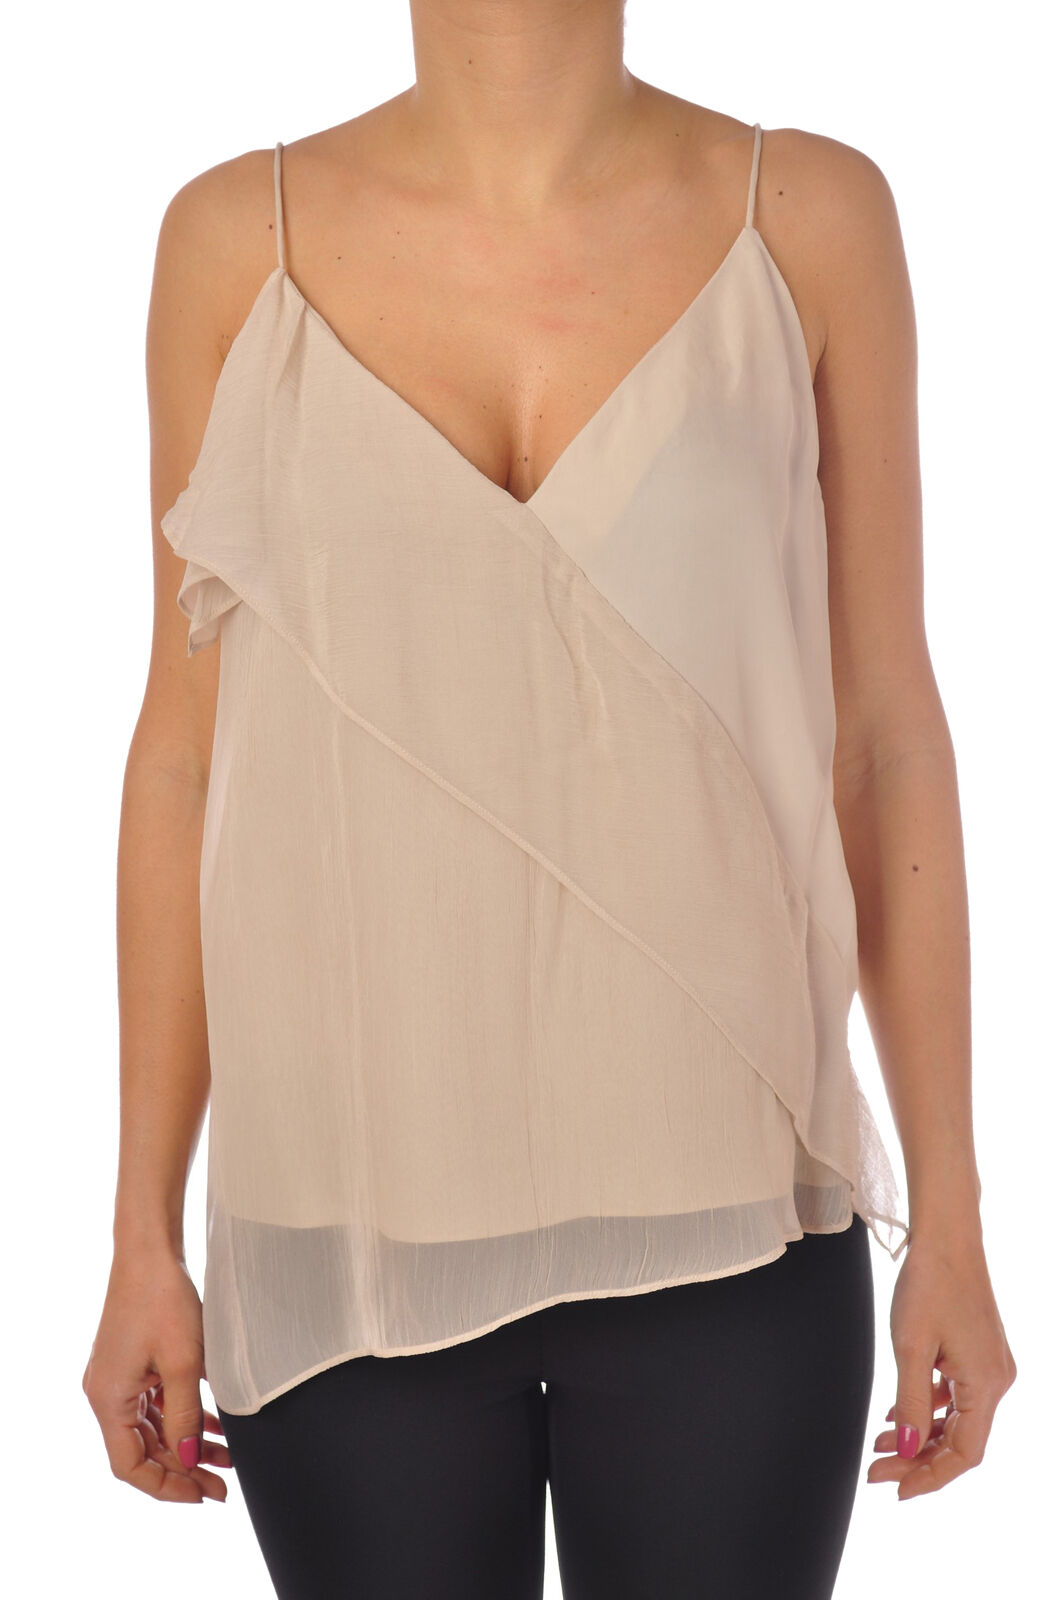 Hoss - Topwear-Sleeveless Top - Woman - Weiß - 5074808G185006